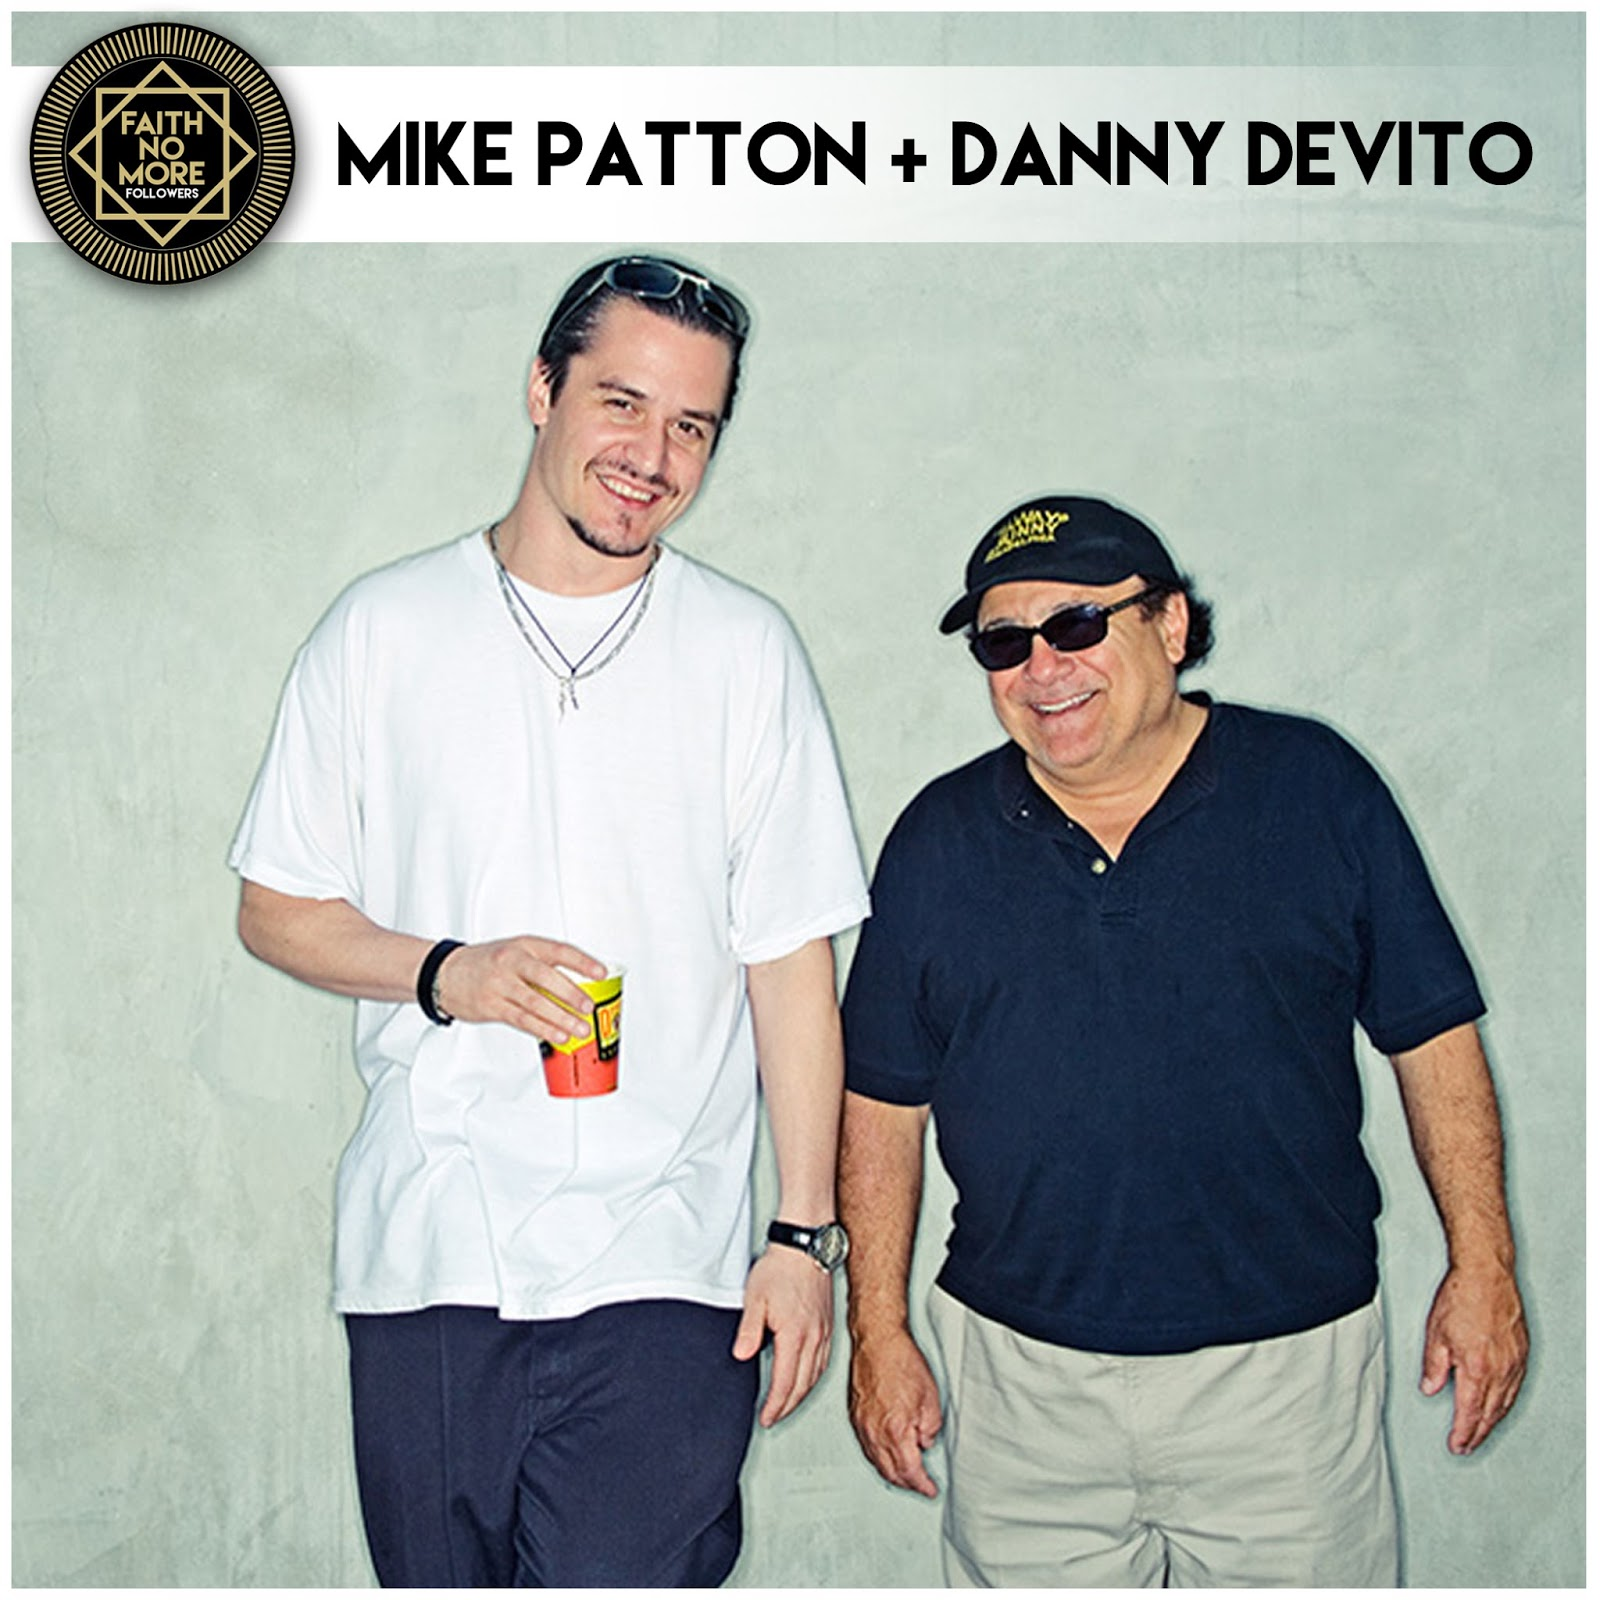 Mike Patton Adult Themes